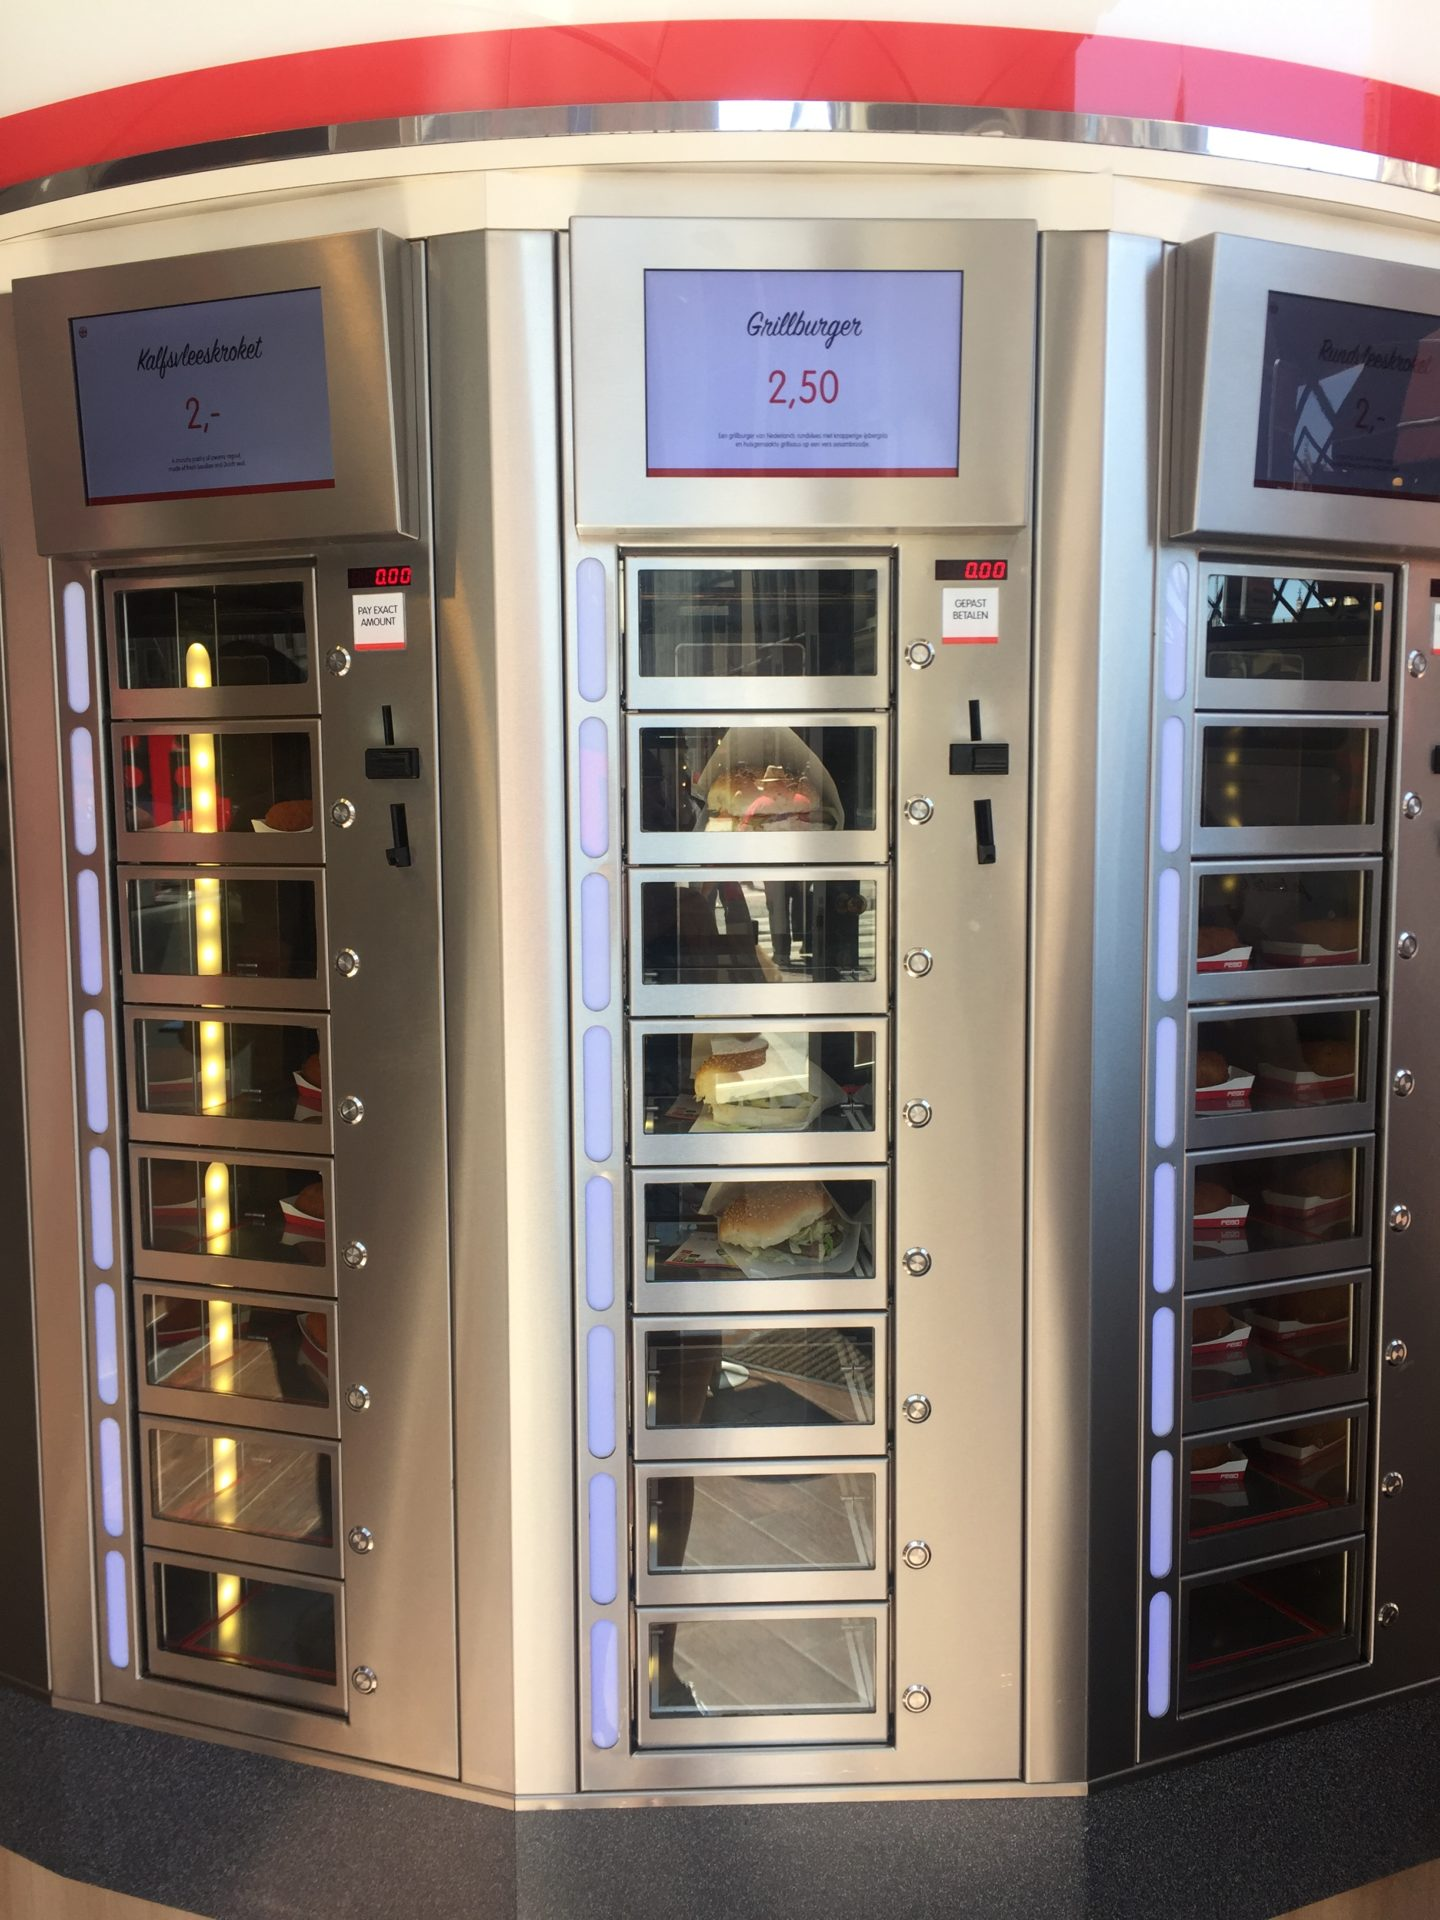 One of the vending machines at Automatiek FEBO